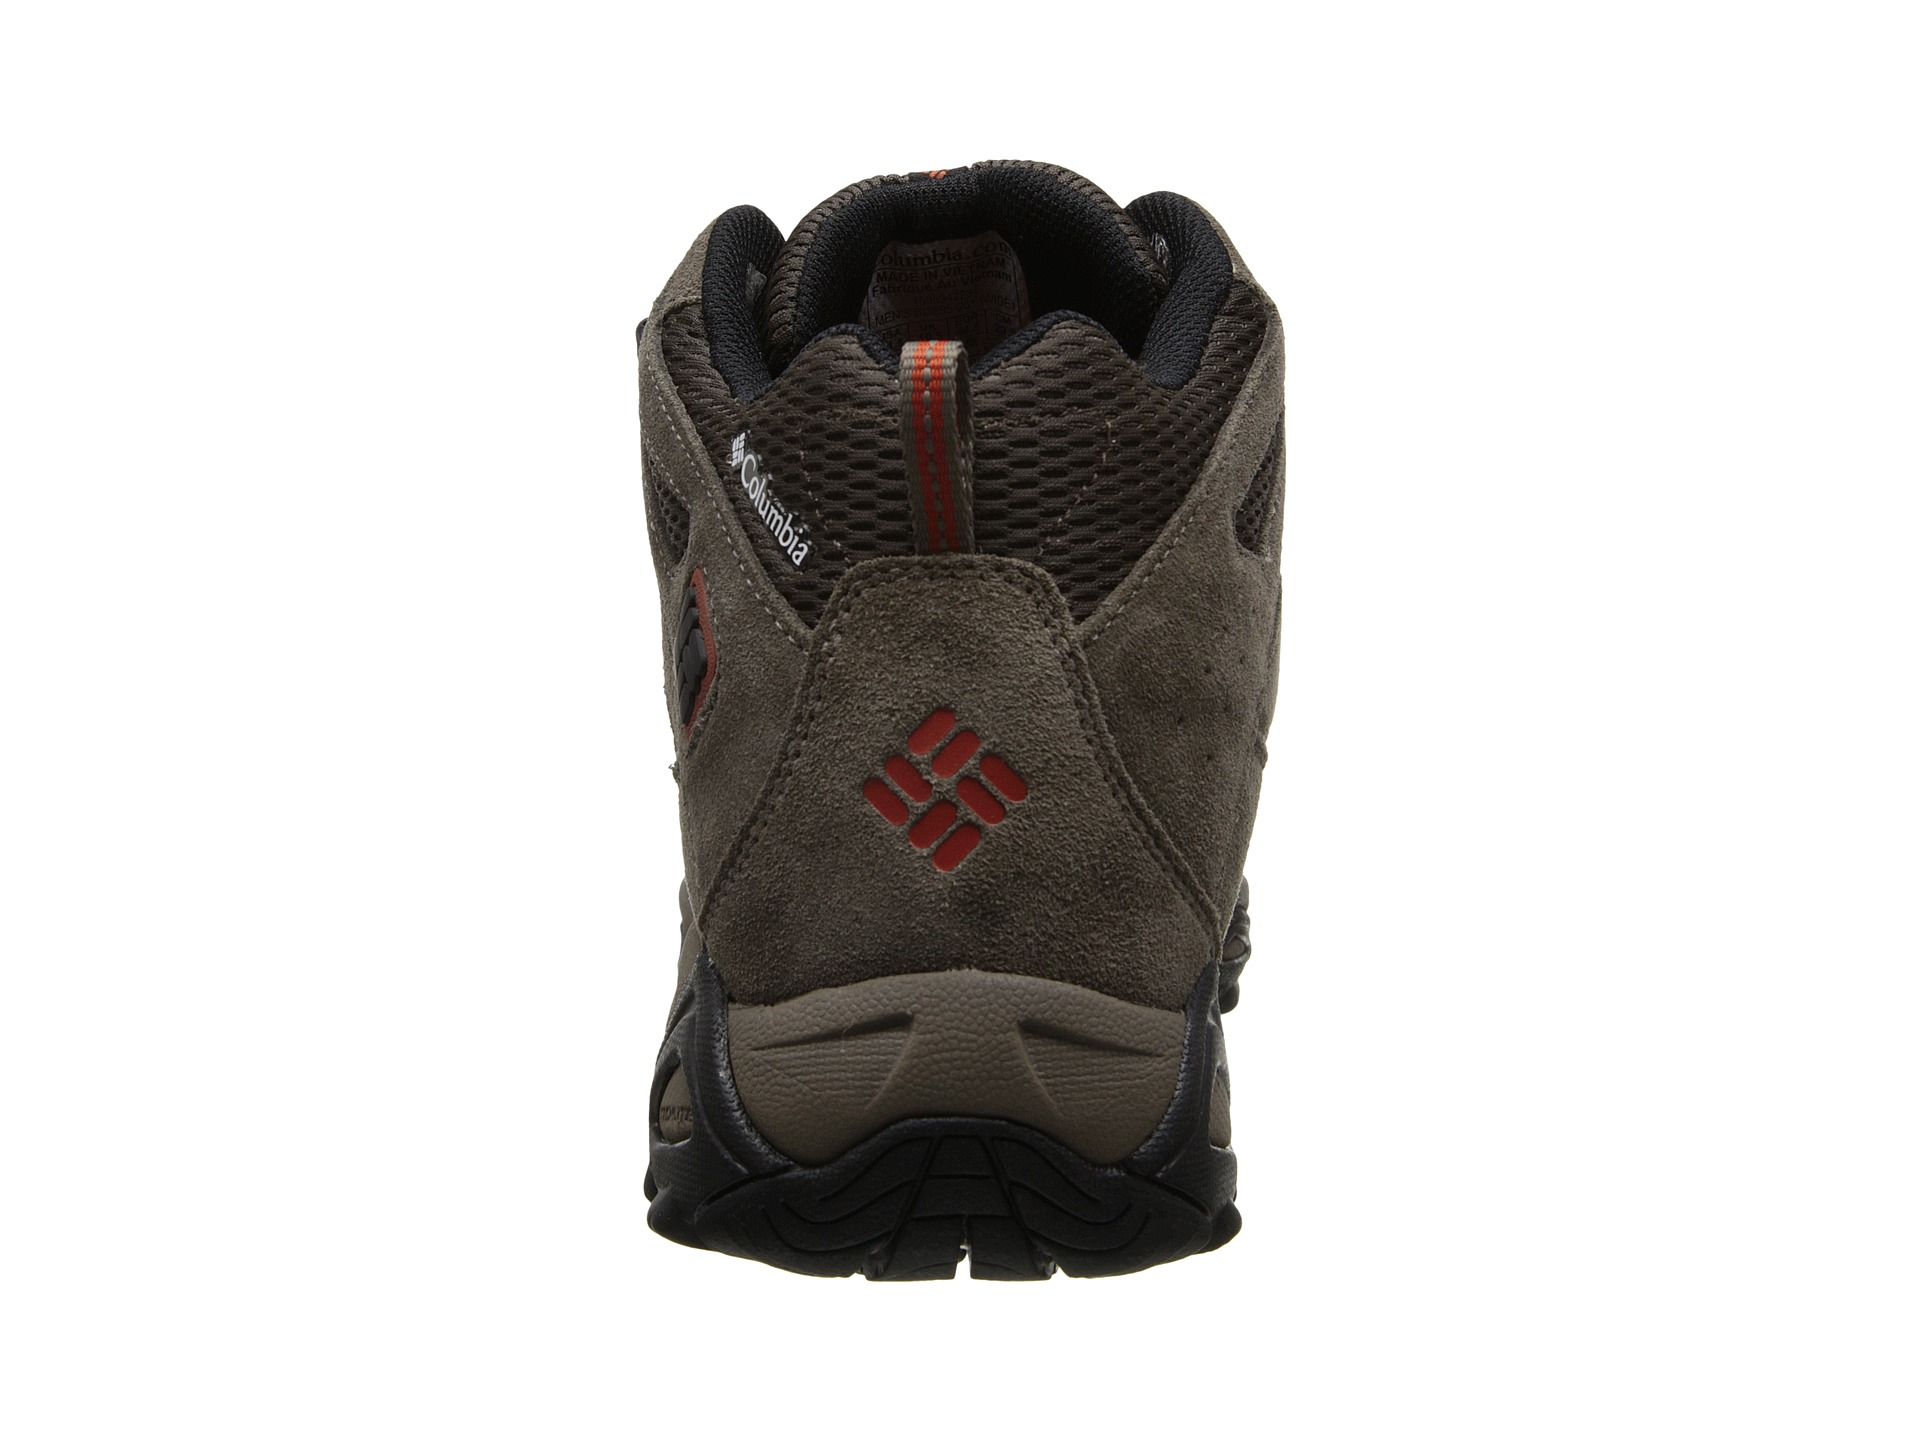 Hiking Shoes For Men Reviews Images